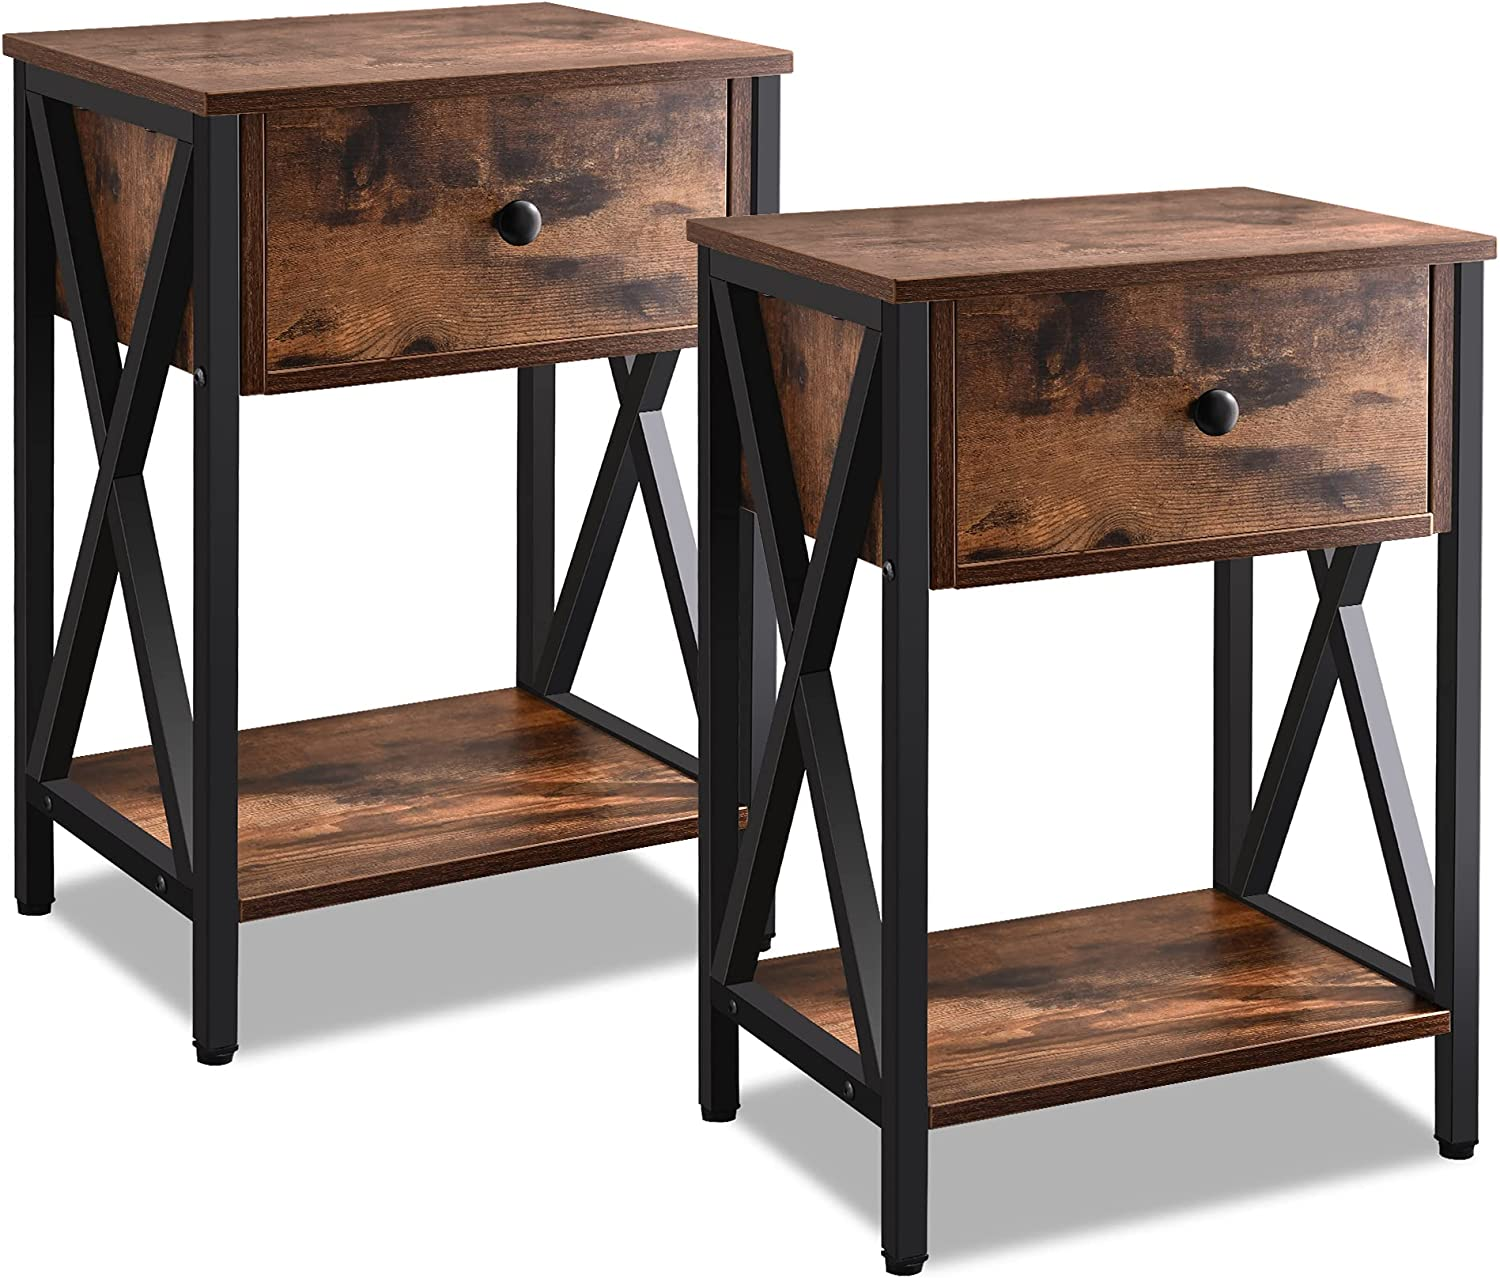 Night Stands Set of 2, Industrial End/ Side Table with Drawers and Open Storage Shelf,Wood Accent Furniturefor Bed Room, Living Room and Other Small Spaces, Rustic Brown